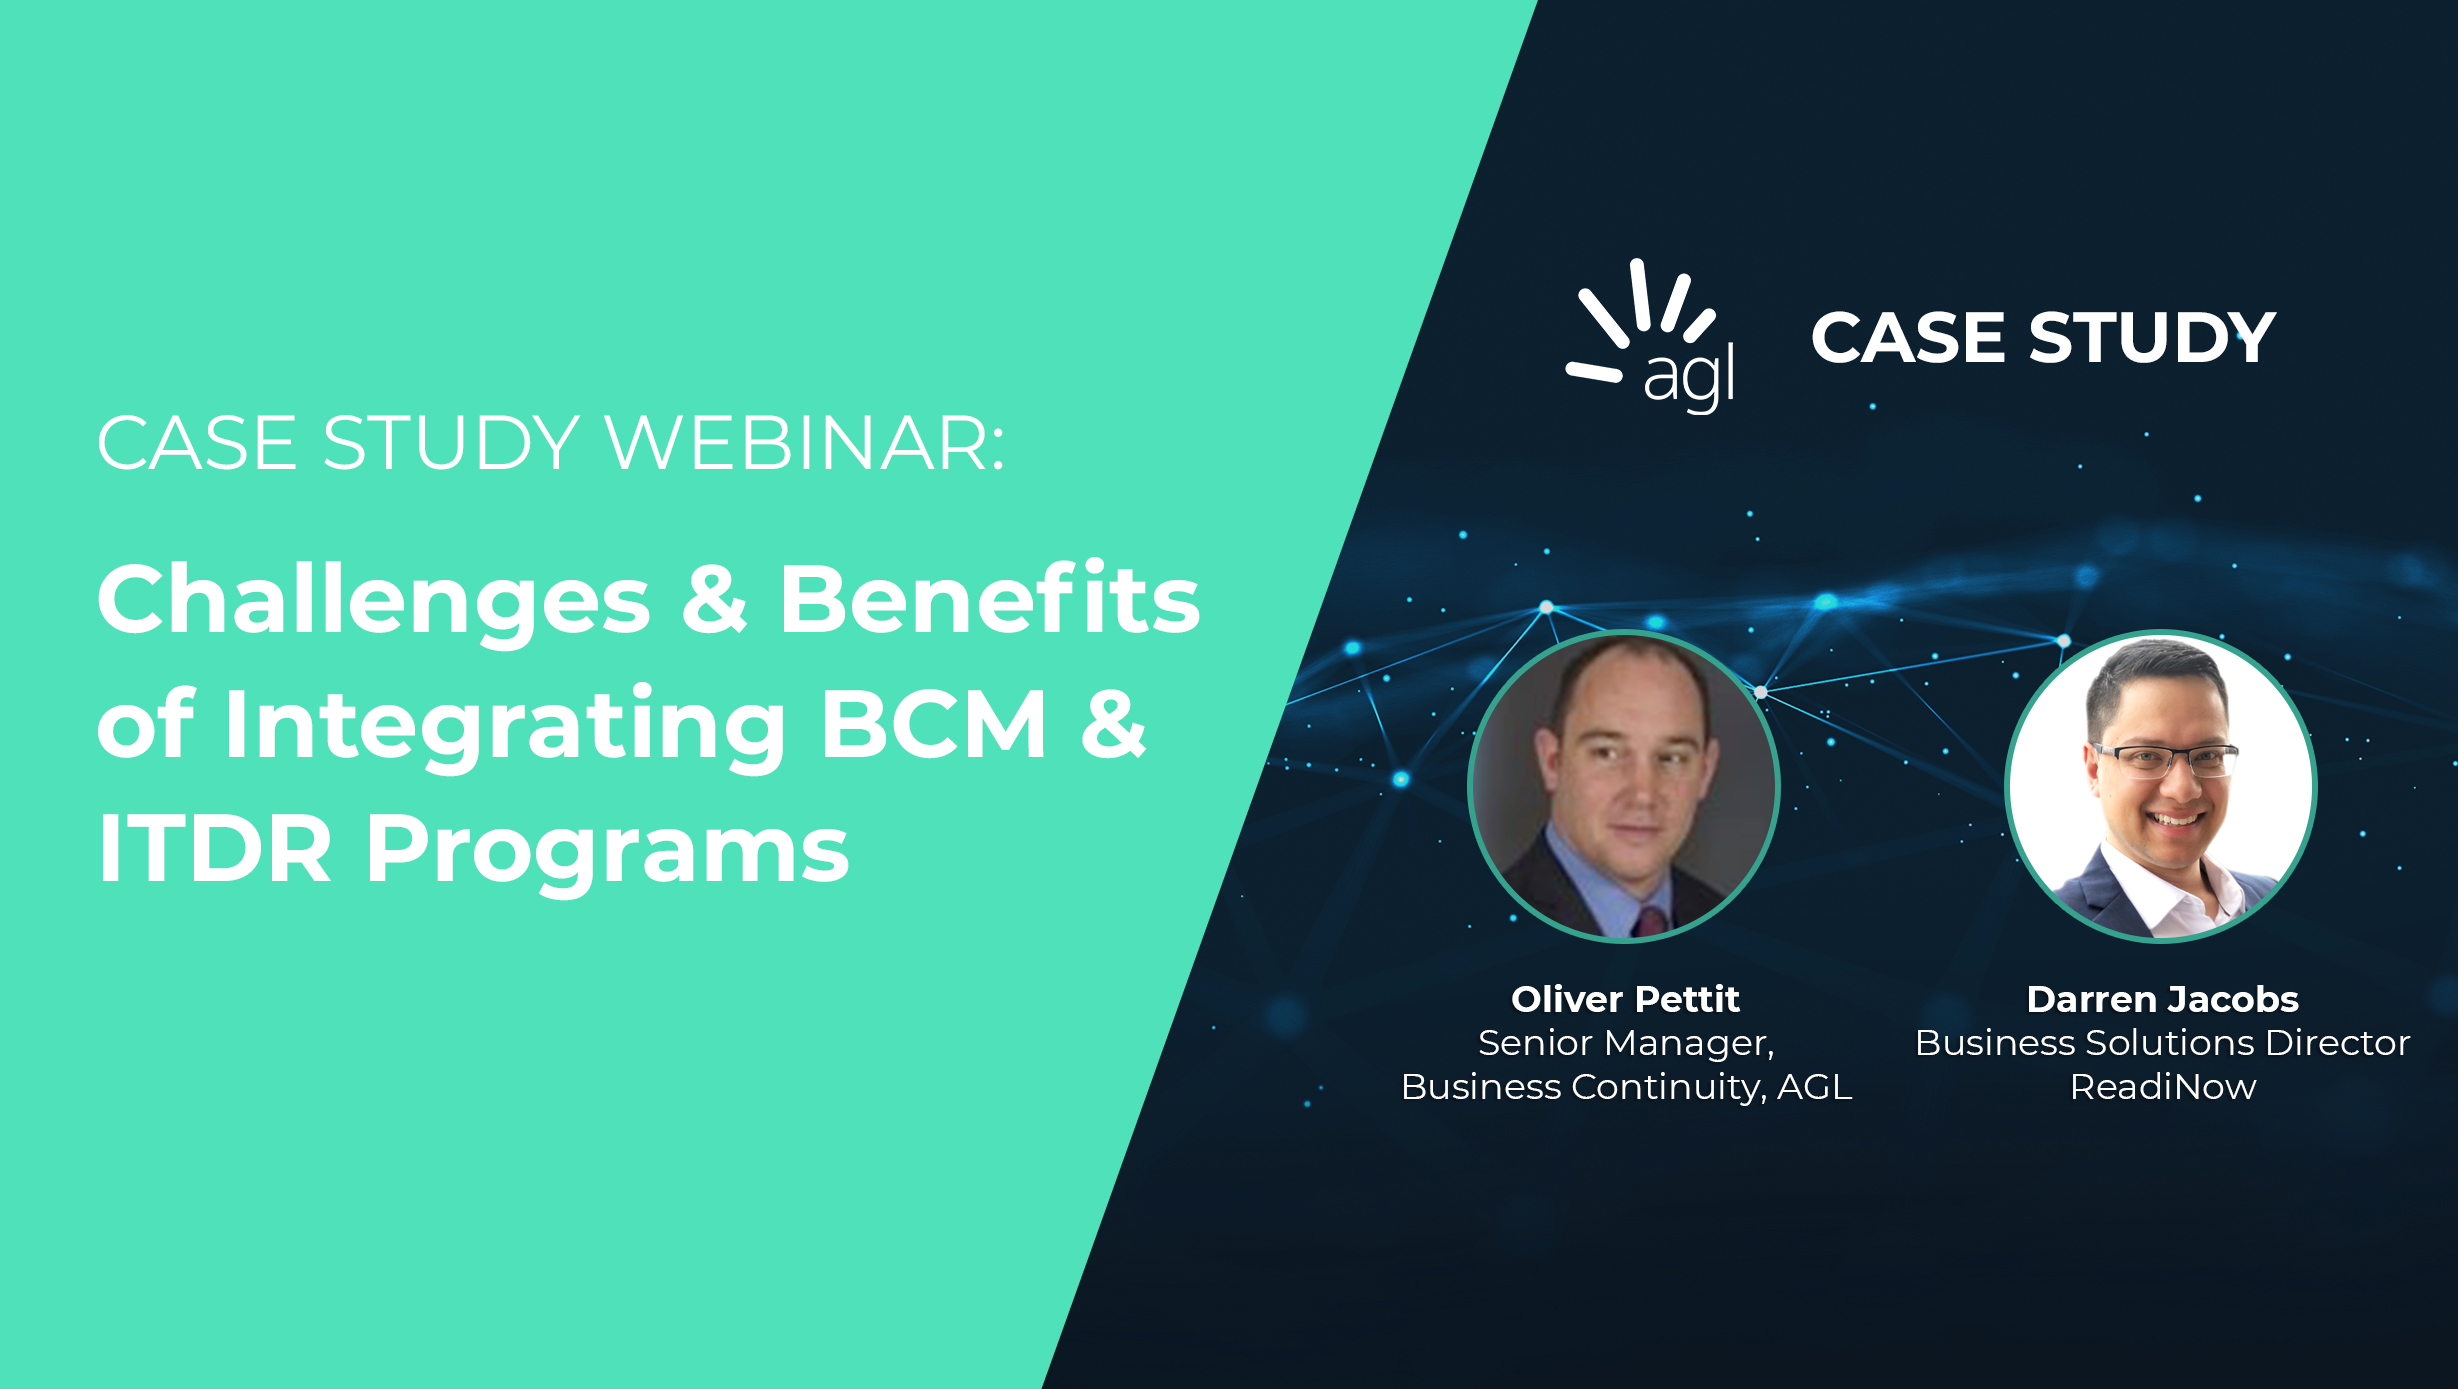 Challenges & Benefits of Integrating BCM & ITDR Programs-1